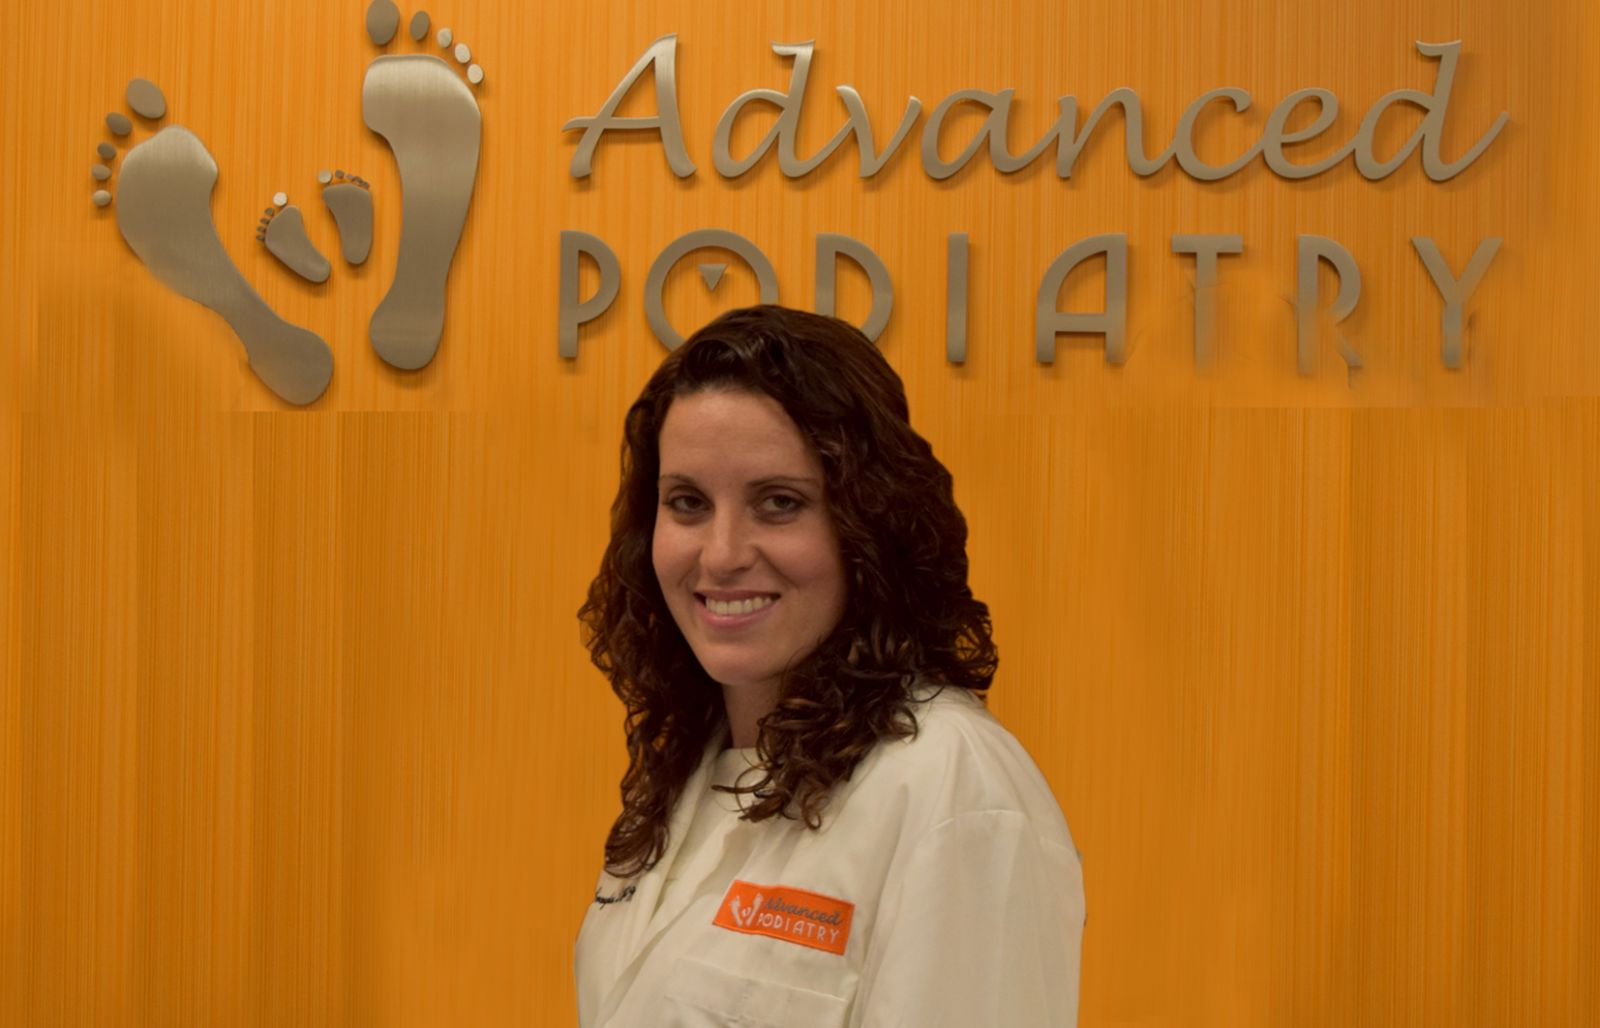 Dr. Alison D. Croughan DPM Advanced Podiatry Huntington Roslyn